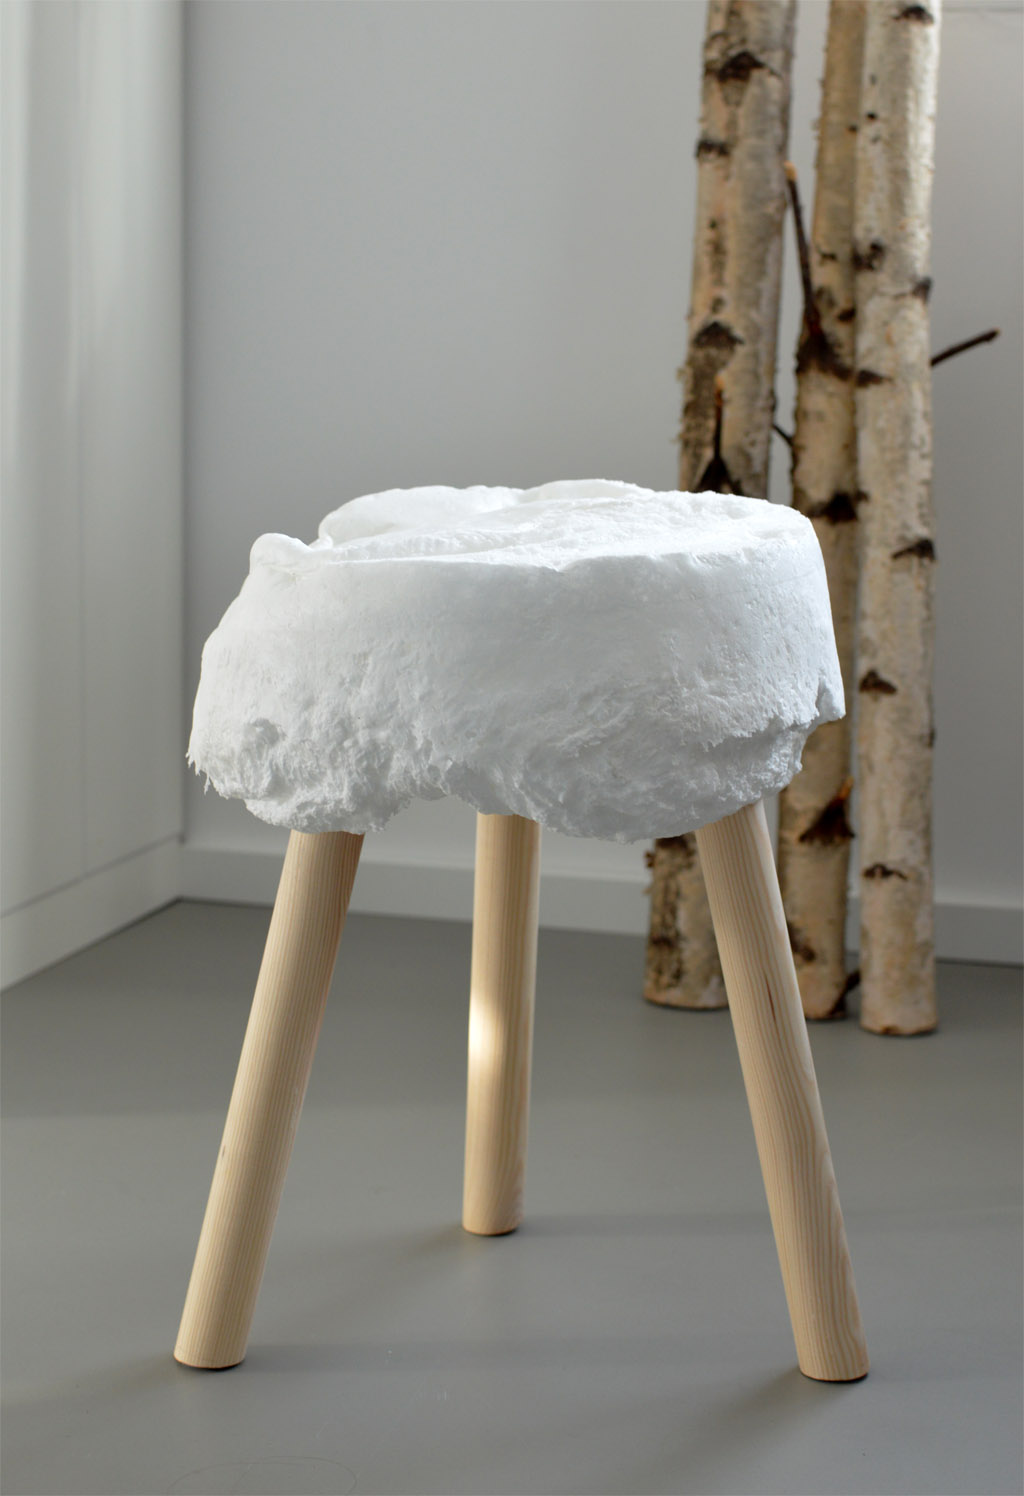 DIY stool expanding foam